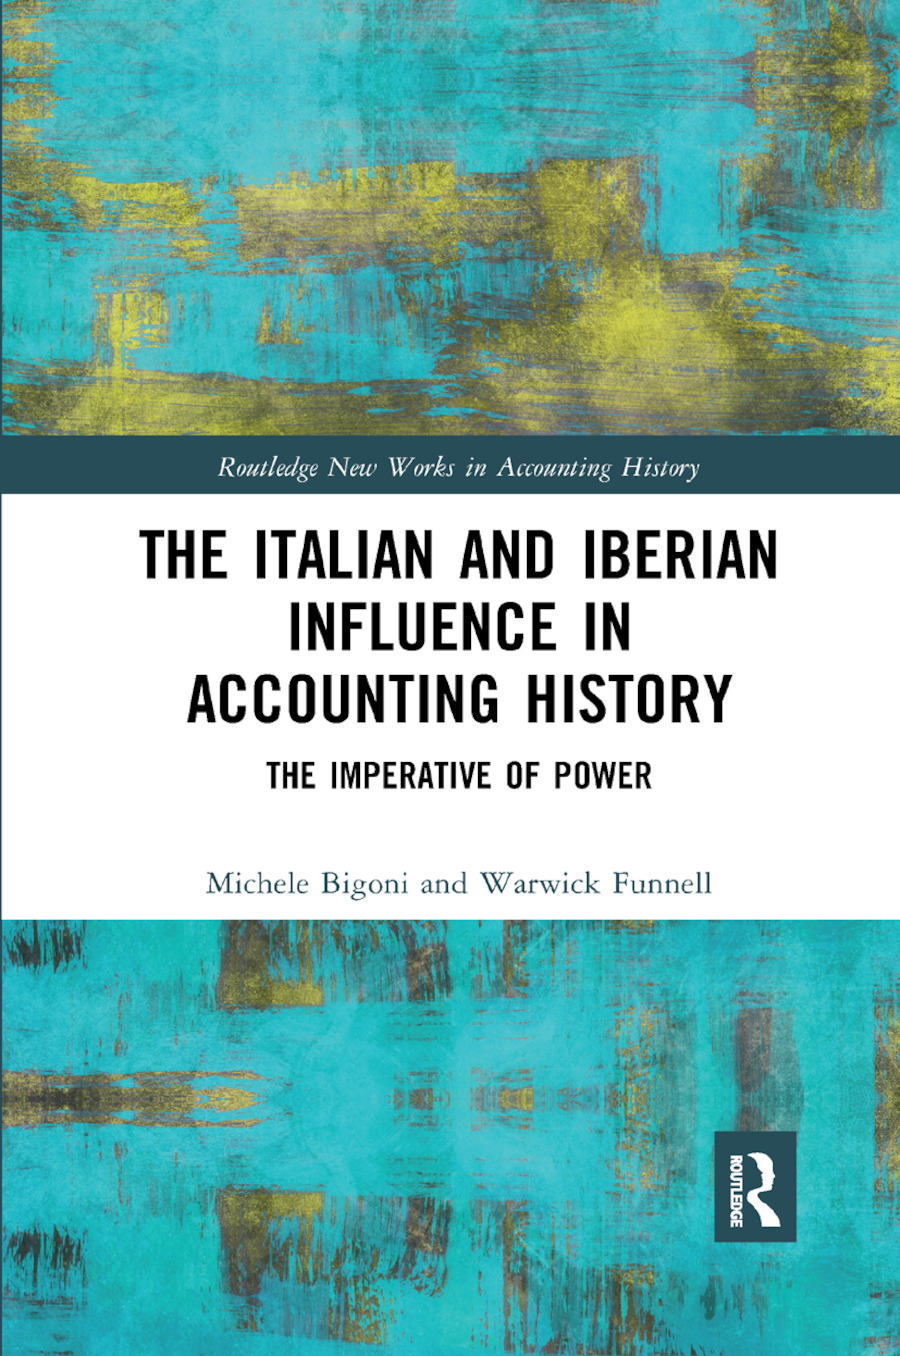 The Italian and Iberian Influence in Accounting History: The Imperative of Power book cover